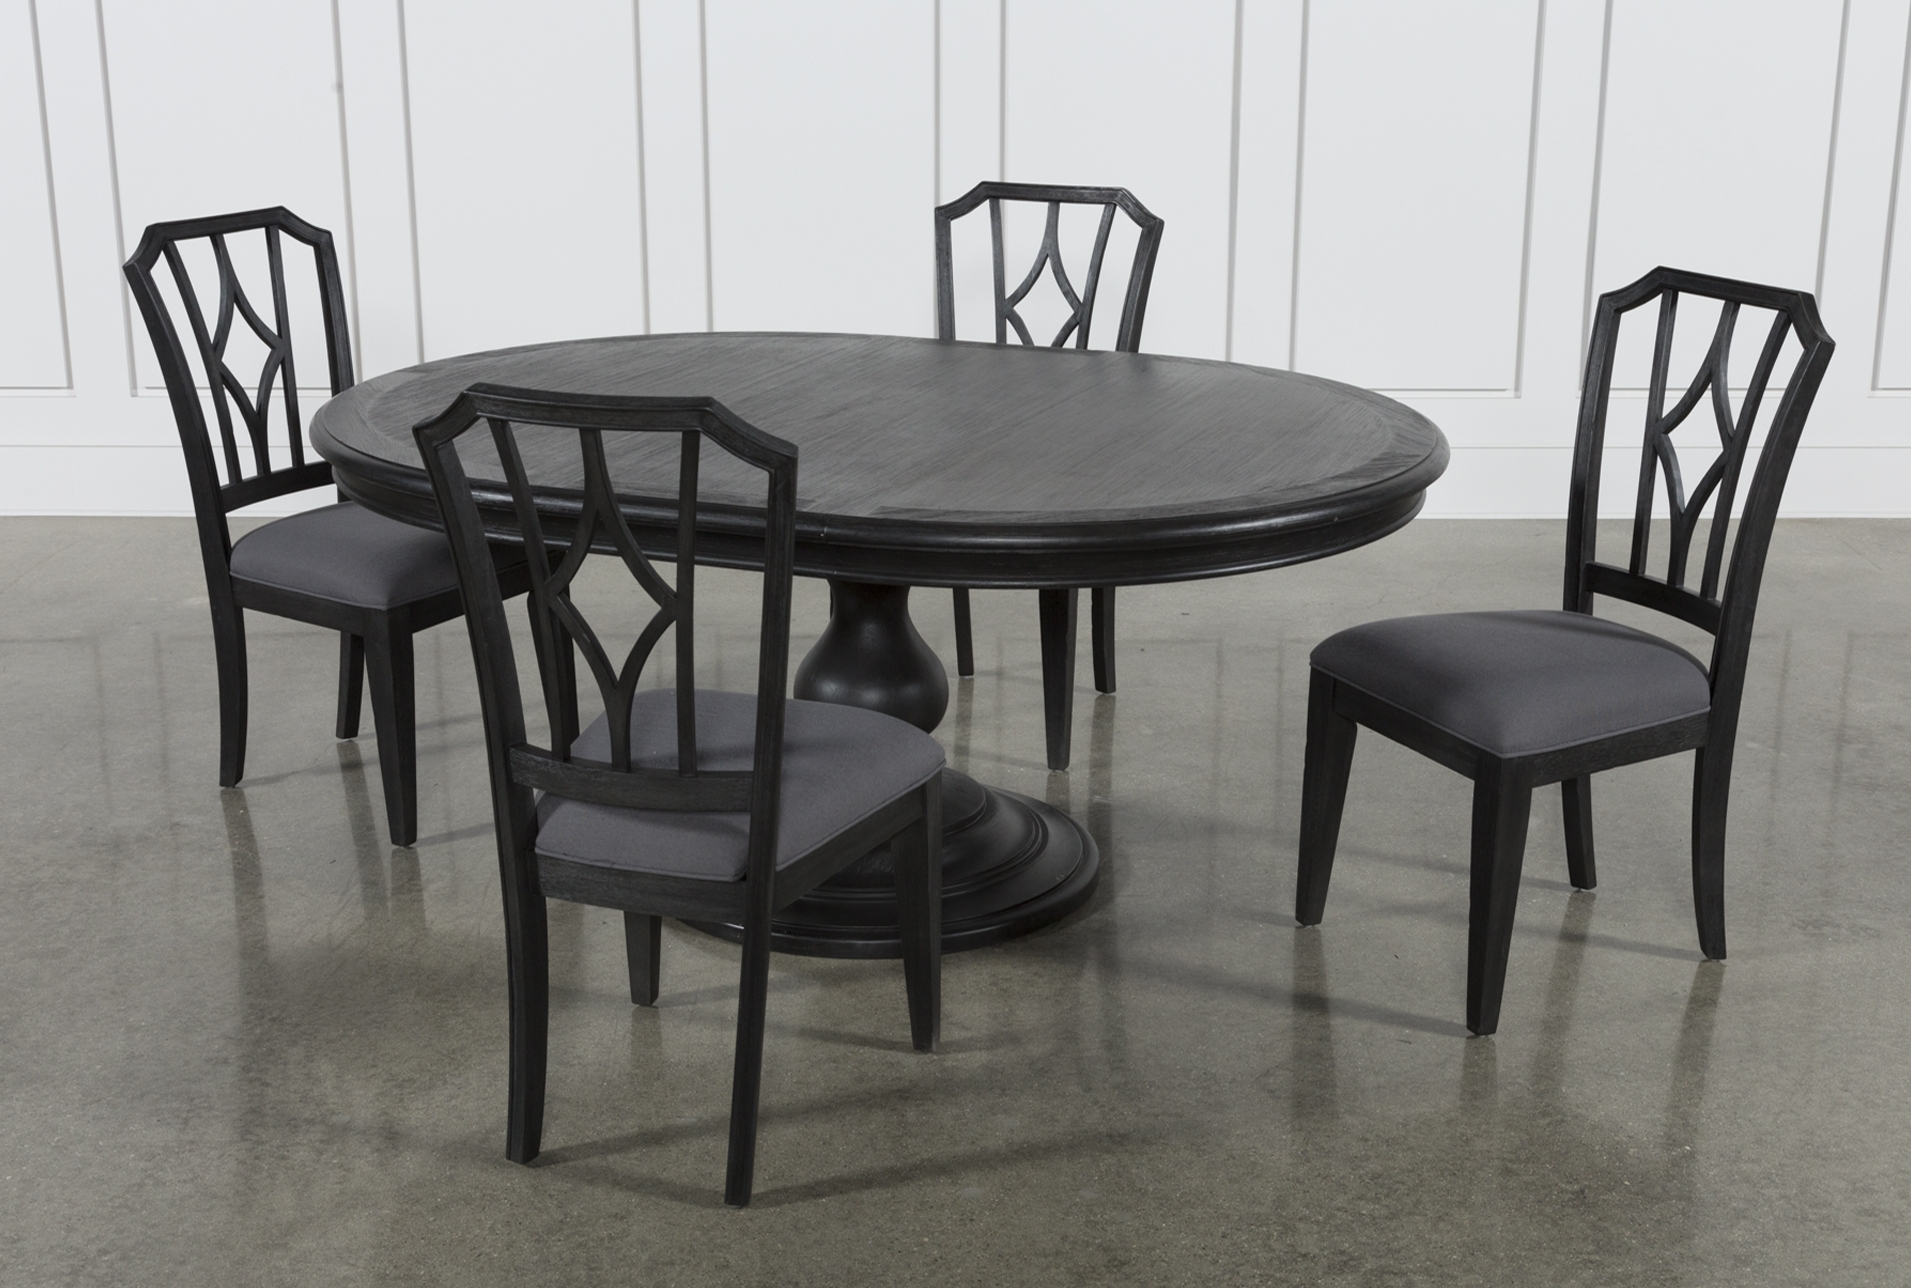 Most Recent Jaxon Grey 5 Piece Round Extension Dining Sets With Wood Chairs Intended For Global Furniture Bar Table Black (View 24 of 25)